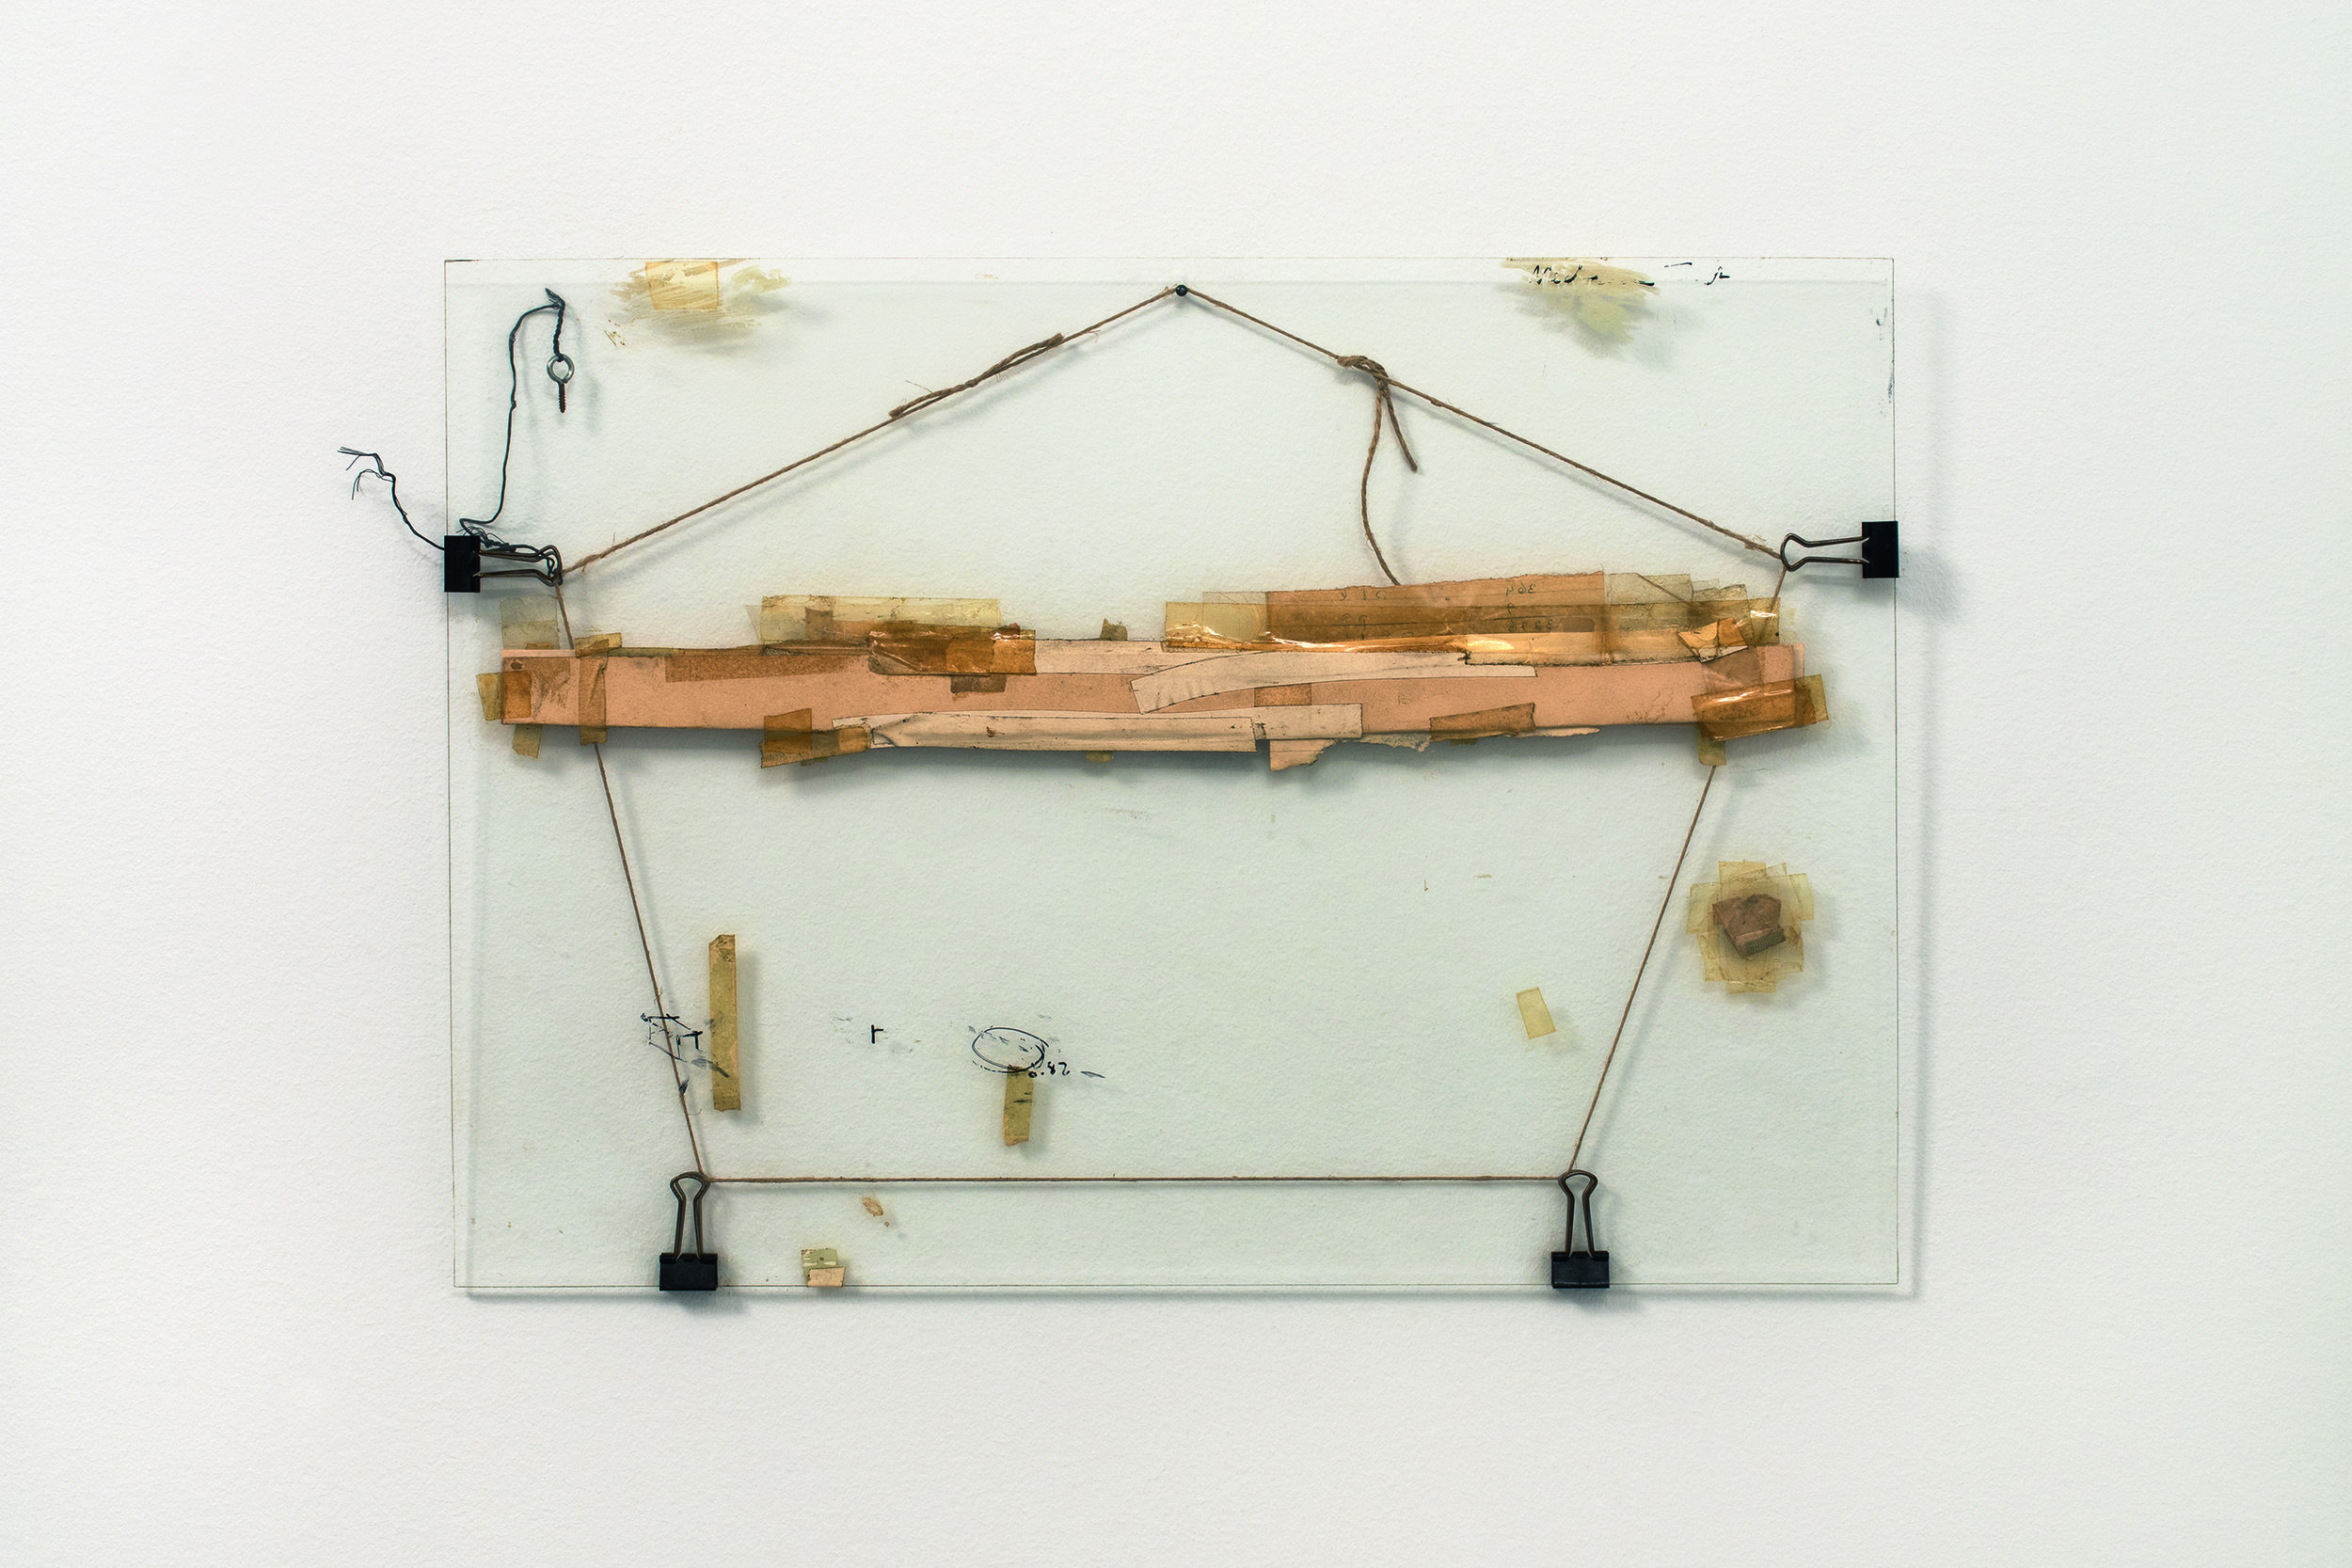 Nahum Tevet, Untitled #3, 1972, restored by the artist, 2016. Cardboard, binder clips, twine, wire, screw eye, masking tape, transparent tape, plastic tape, marker, and wax pencil on glass, 13 3/4 x 19 3/8 x 7/16 in. (34.9 x 49.2 x 1.1 cm). Collection of the artist. Photo by Polite Photographic, courtesy of the Hunter College Art Galleries and the artist.